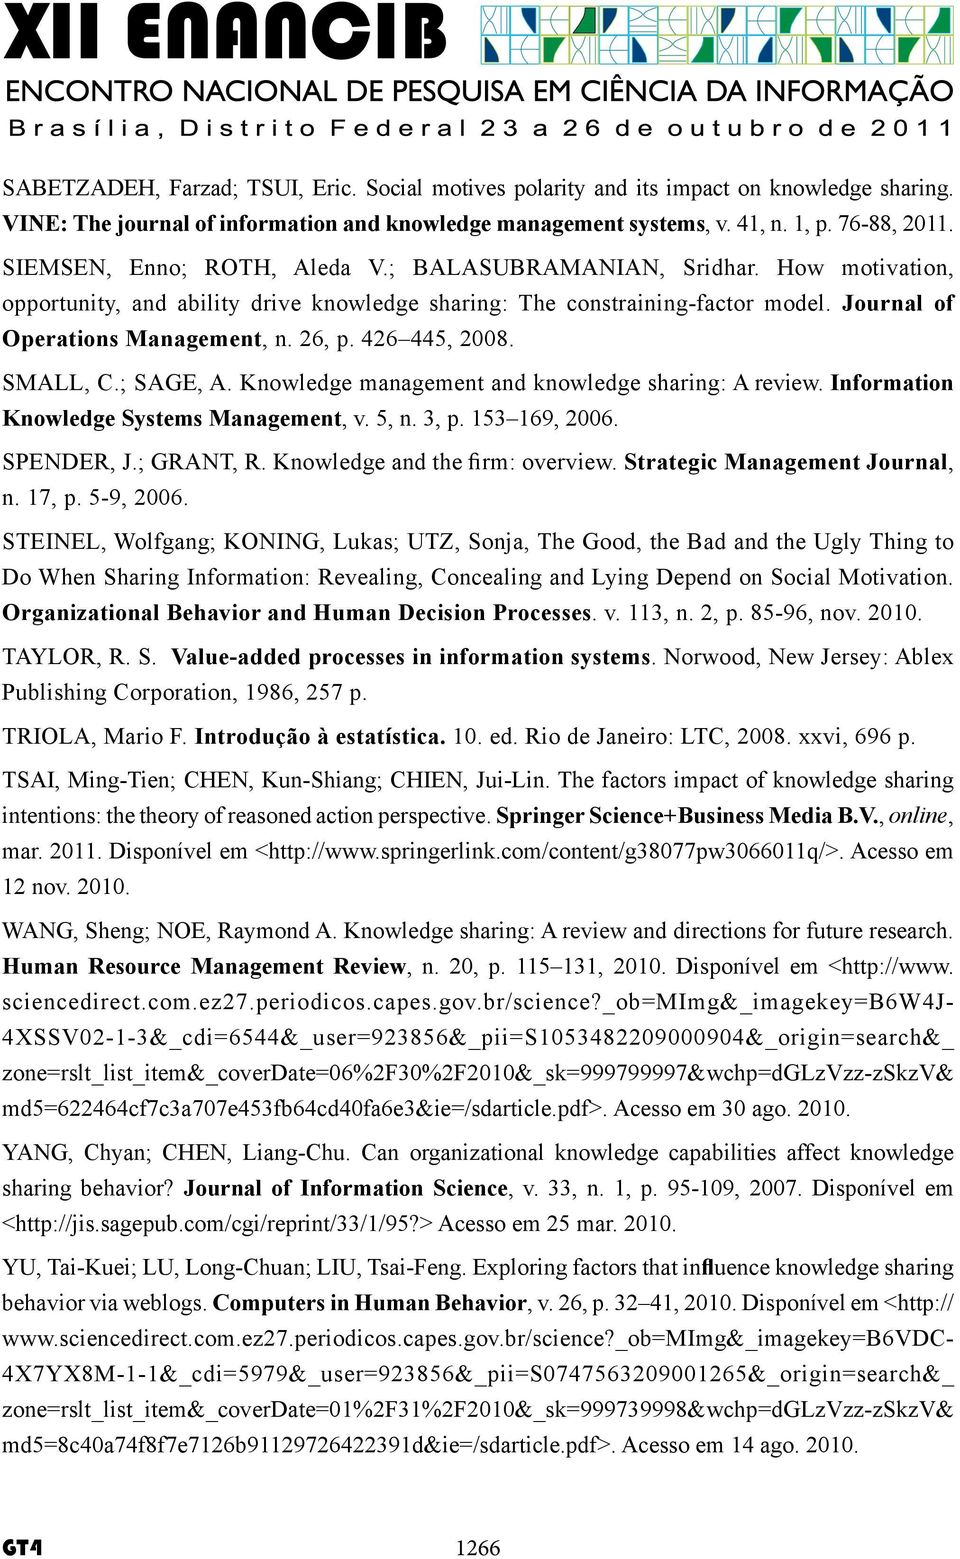 426 445, 2008. SMALL, C.; SAGE, A. Knowledge management and knowledge sharing: A review. Information Knowledge Systems Management, v. 5, n. 3, p. 153 169, 2006. SPENDER, J.; GRANT, R.